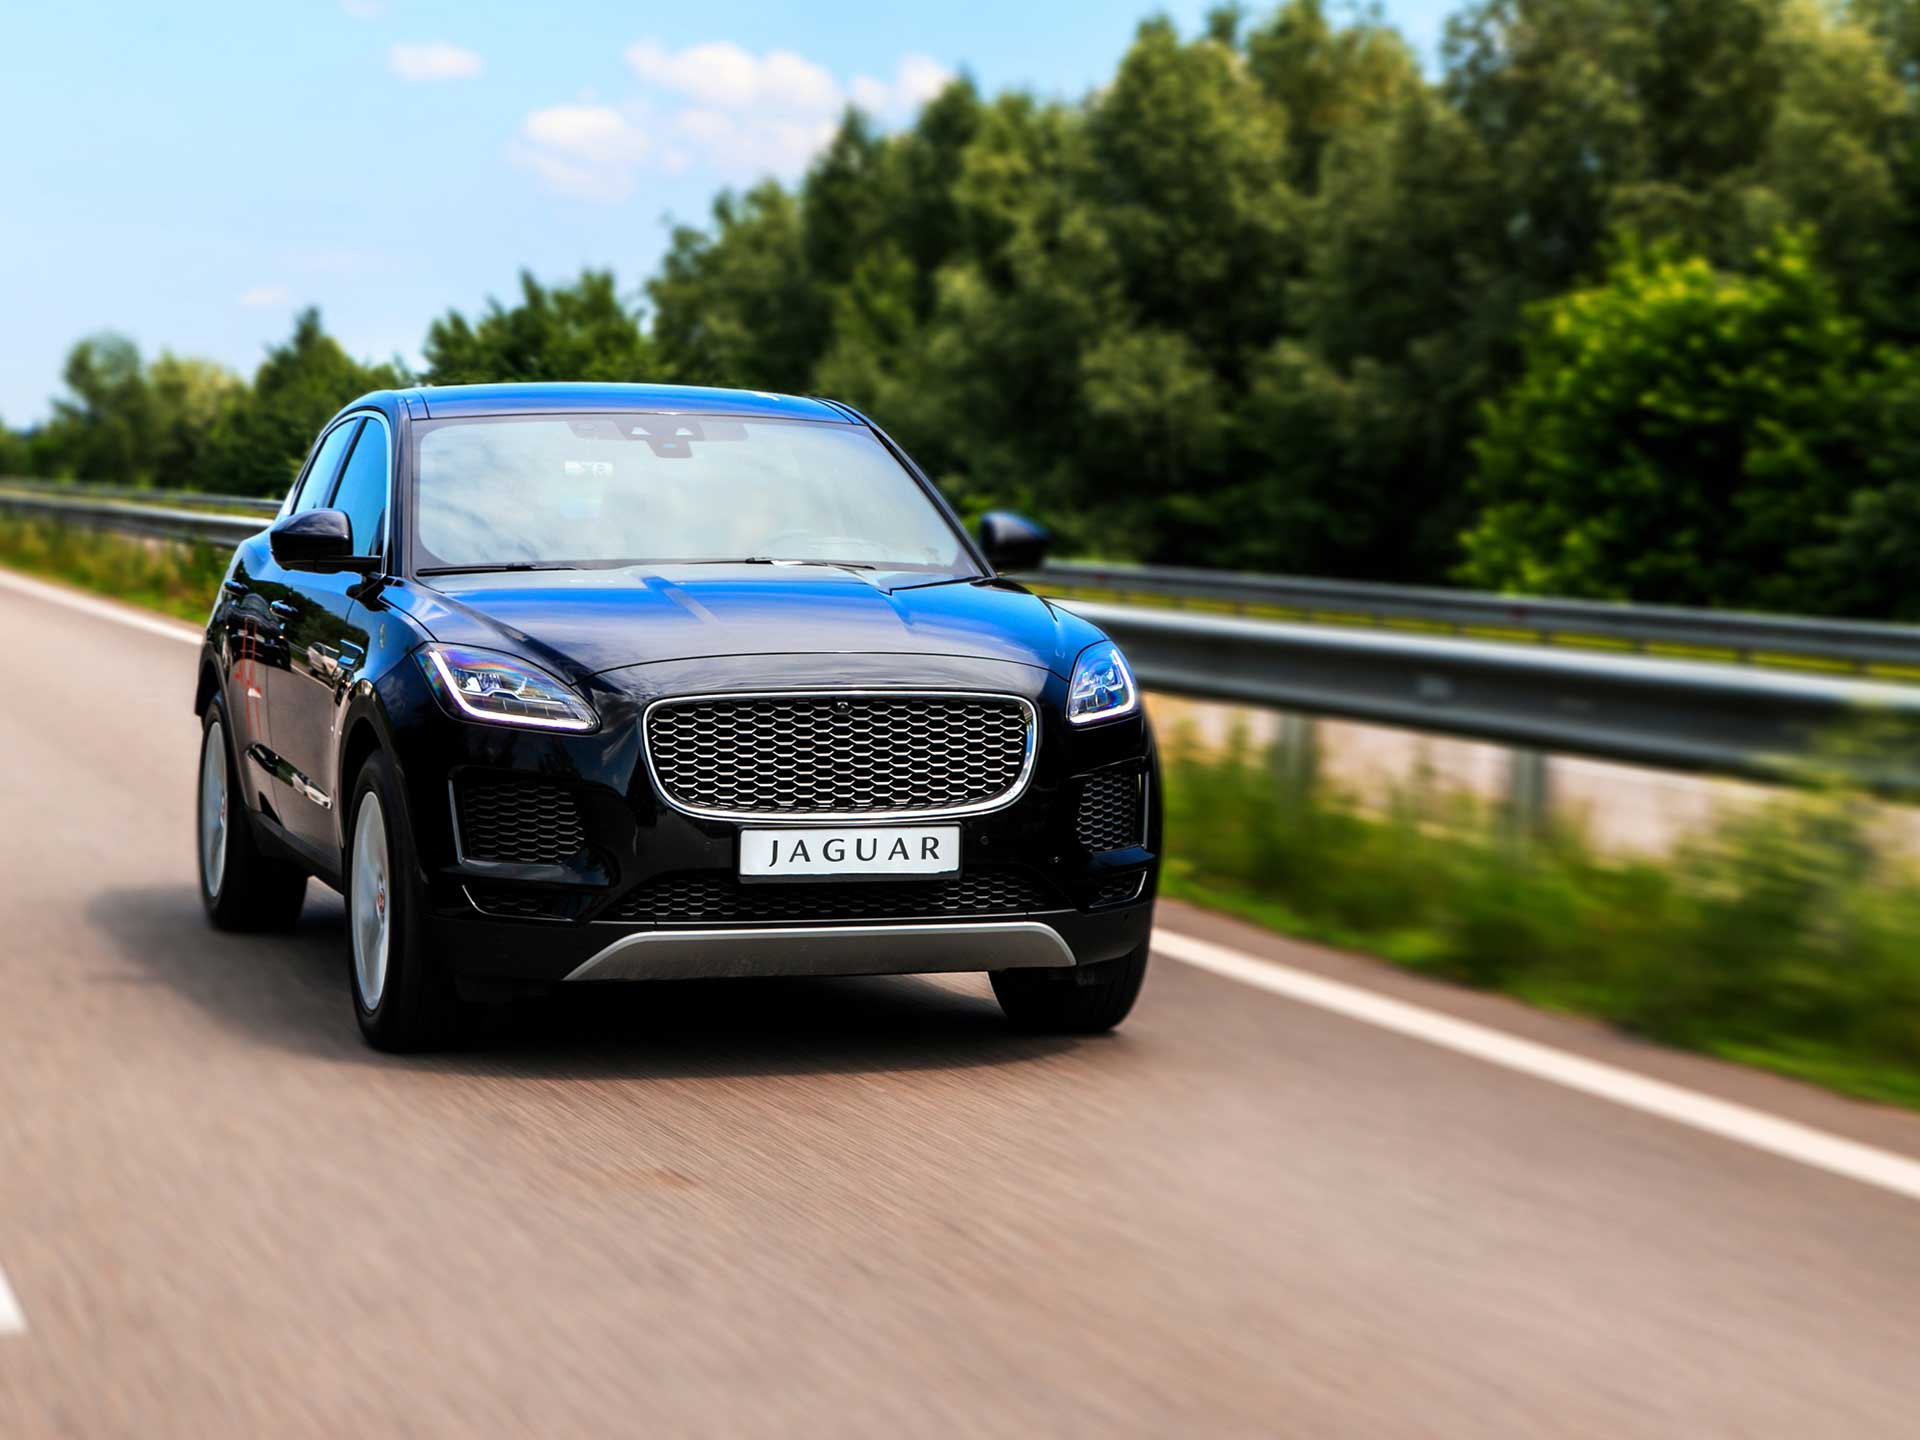 Luxury car brand Jaguar plans to be an all-electric by 2025